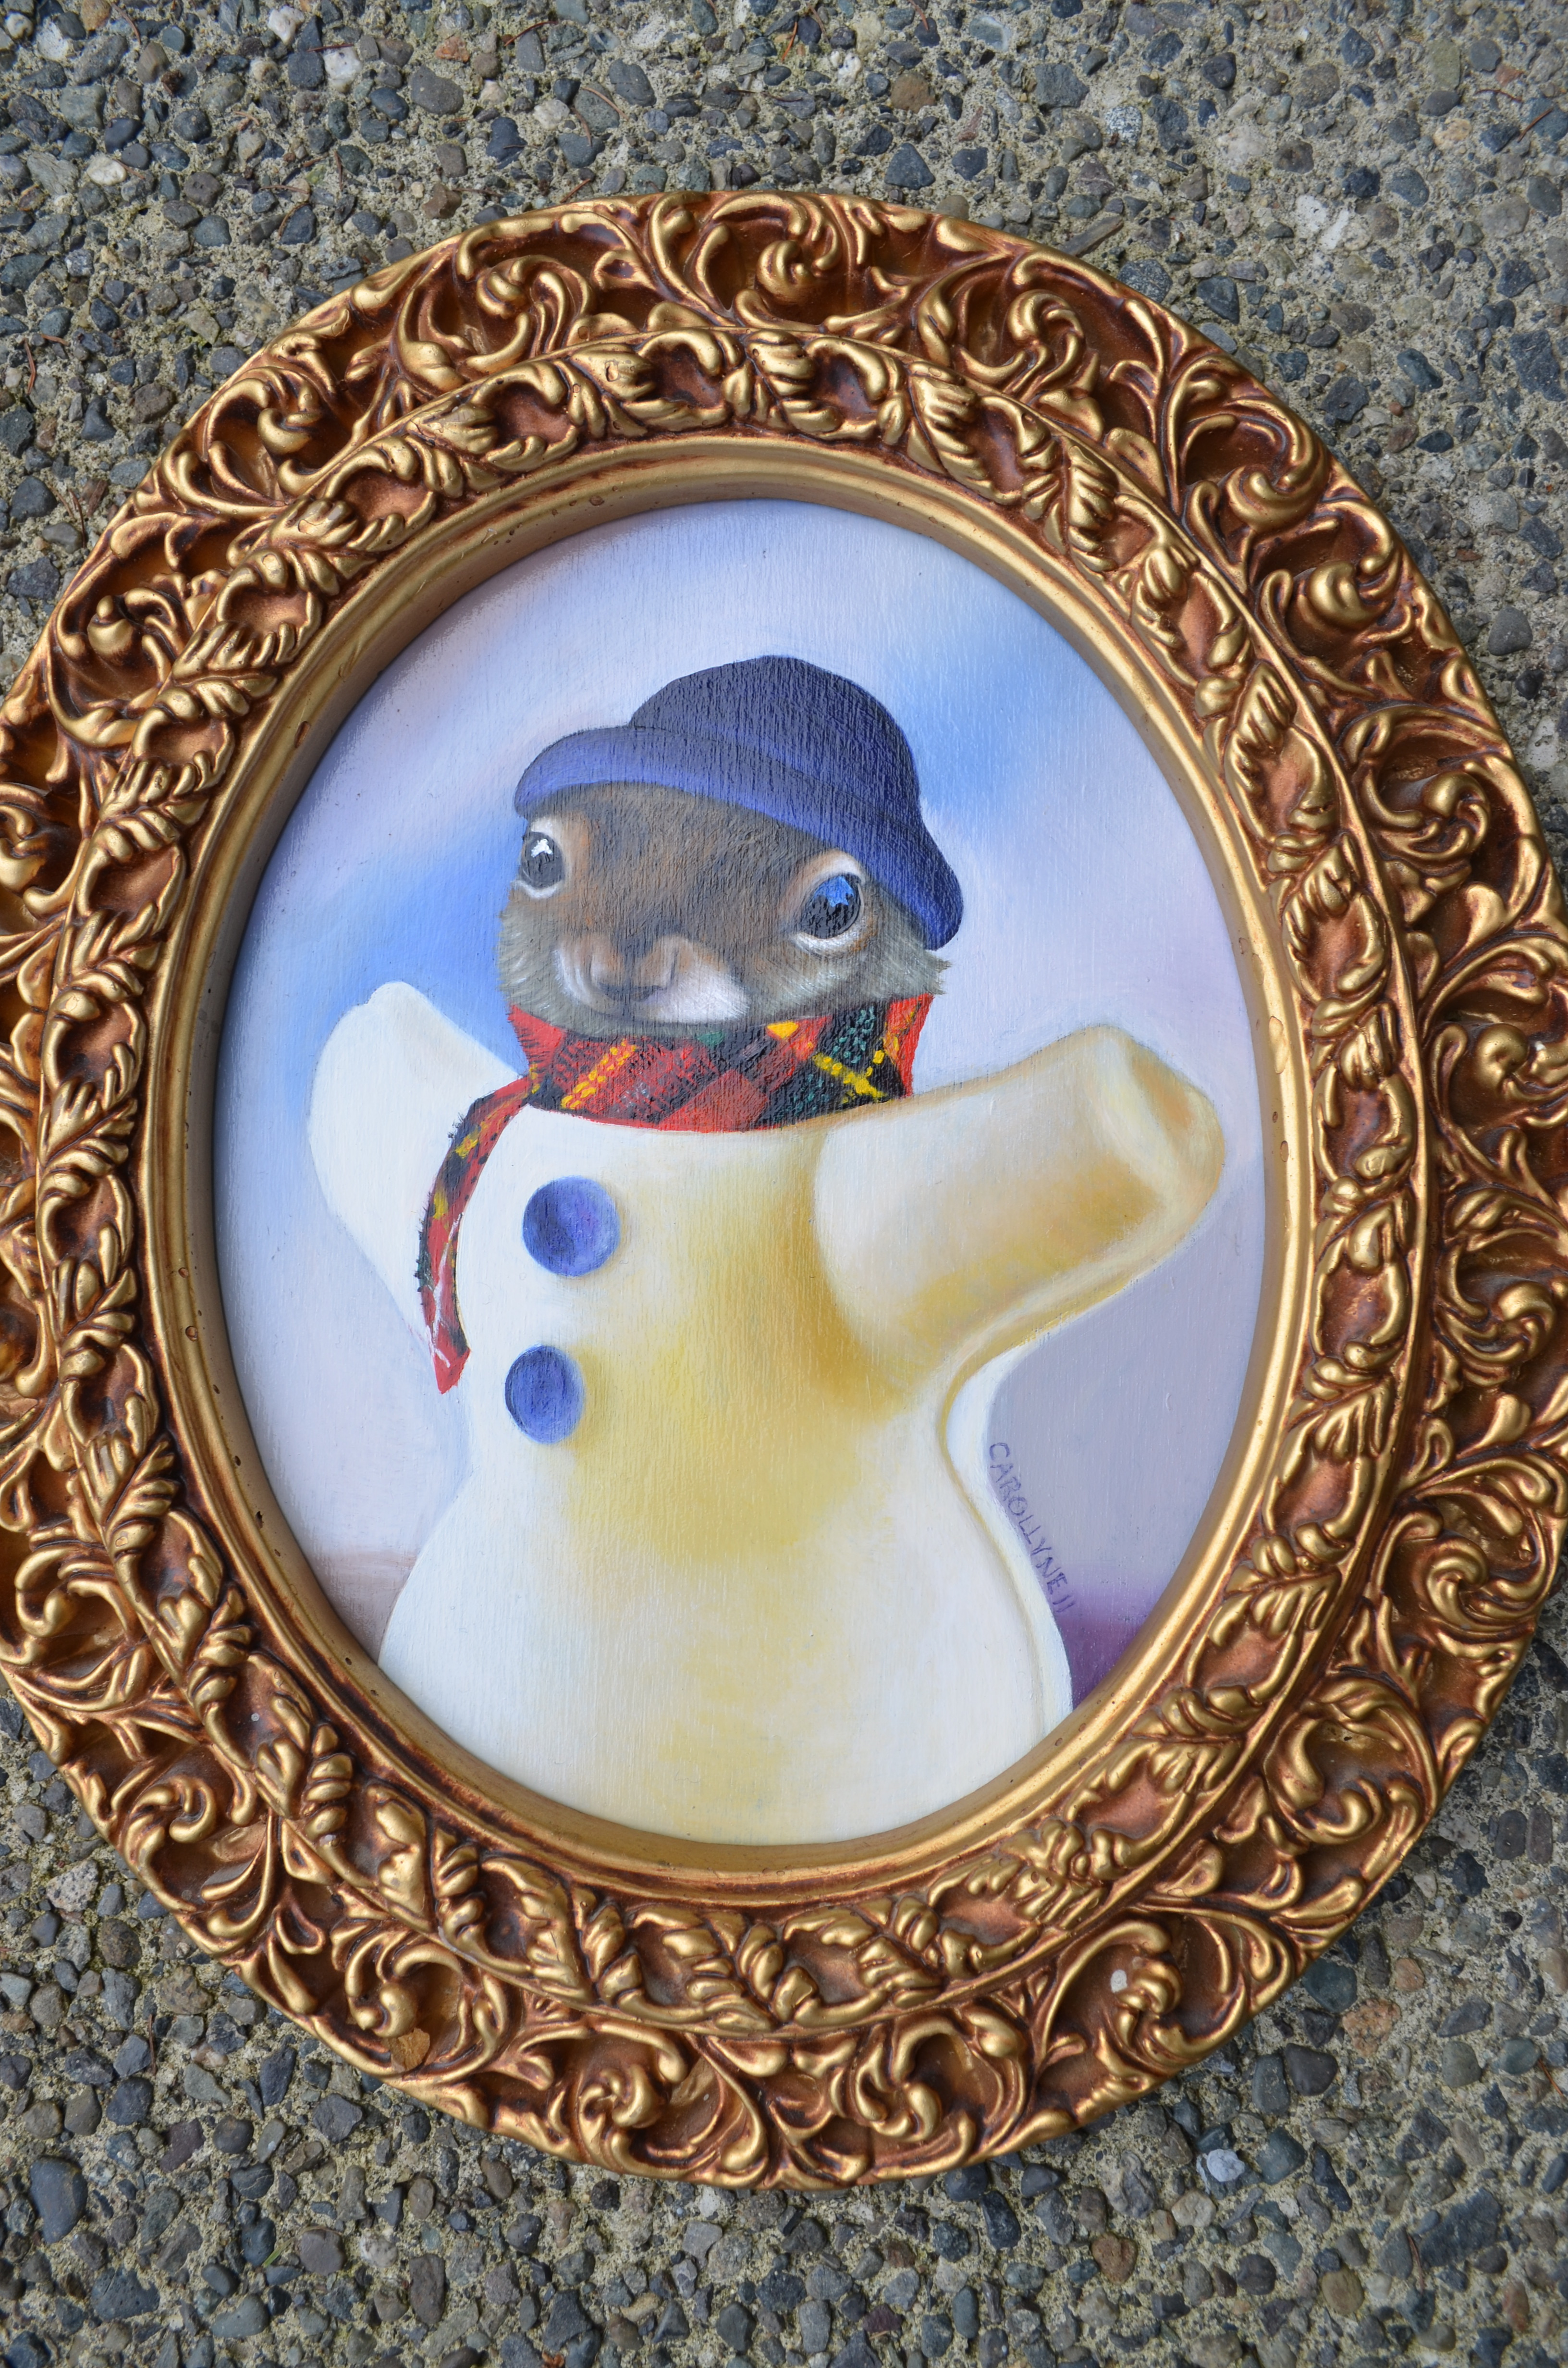 Snowman Squirrel | 8.5 X 10.5 | Oil on Board | Carollyne Yardley | Available at the Red Art Gallery (Oak Bay Avenue)